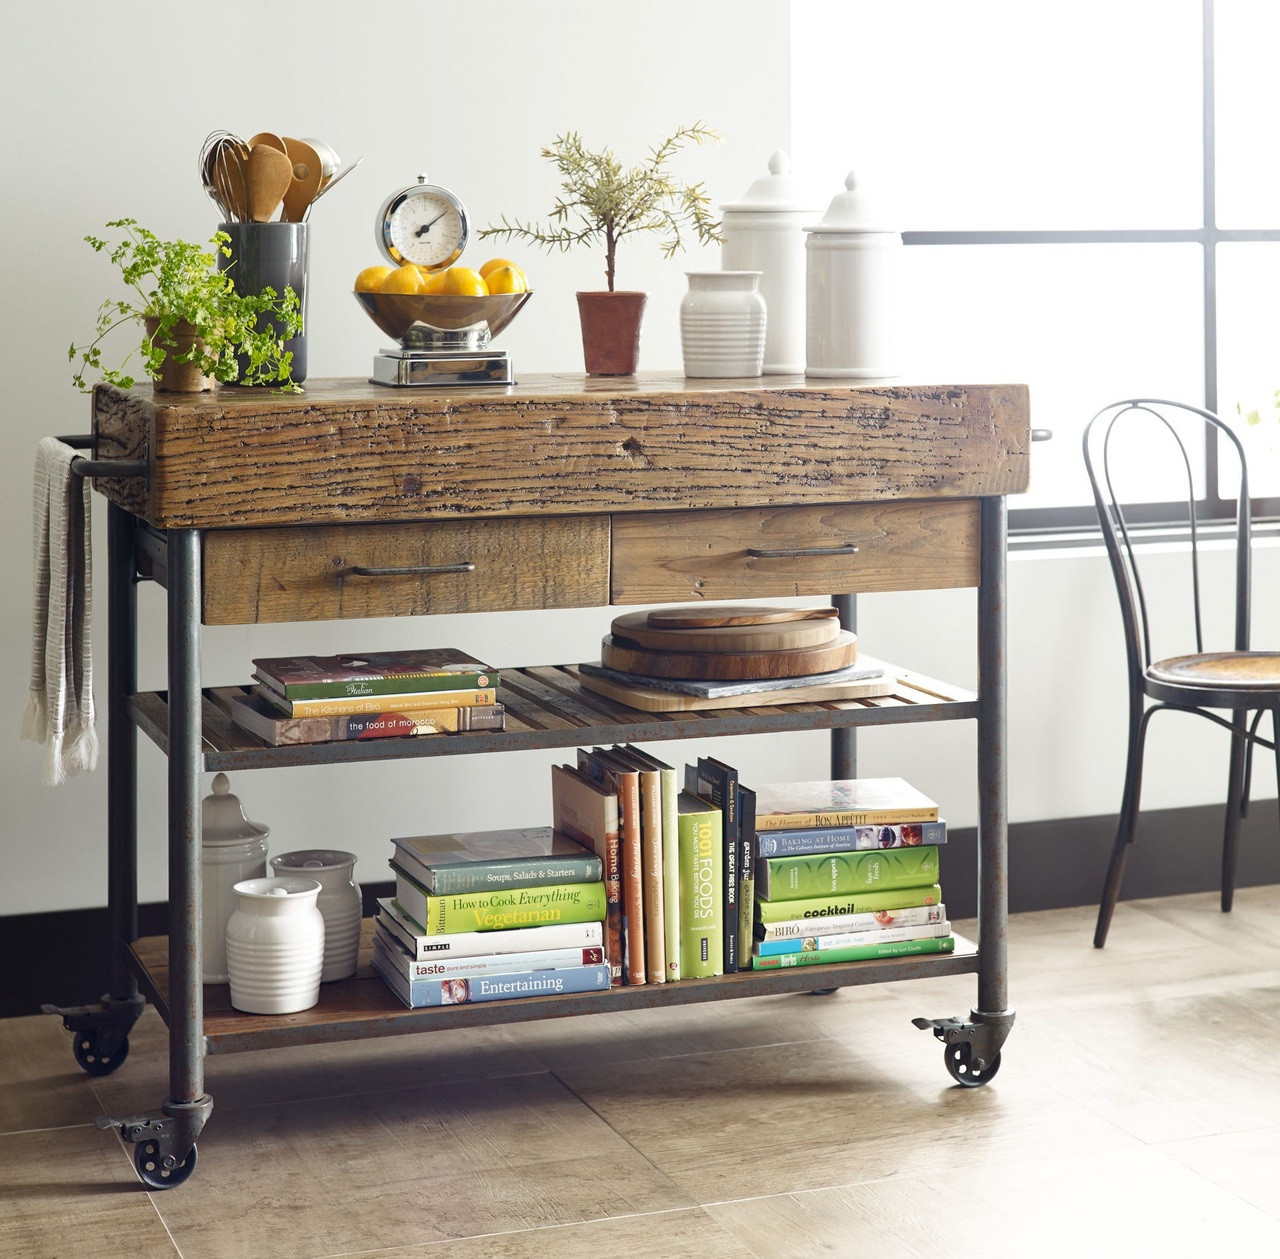 Ordinaire Industrial Reclaimed Wood Kitchen Island Cart. Free Standing Kitchen Island